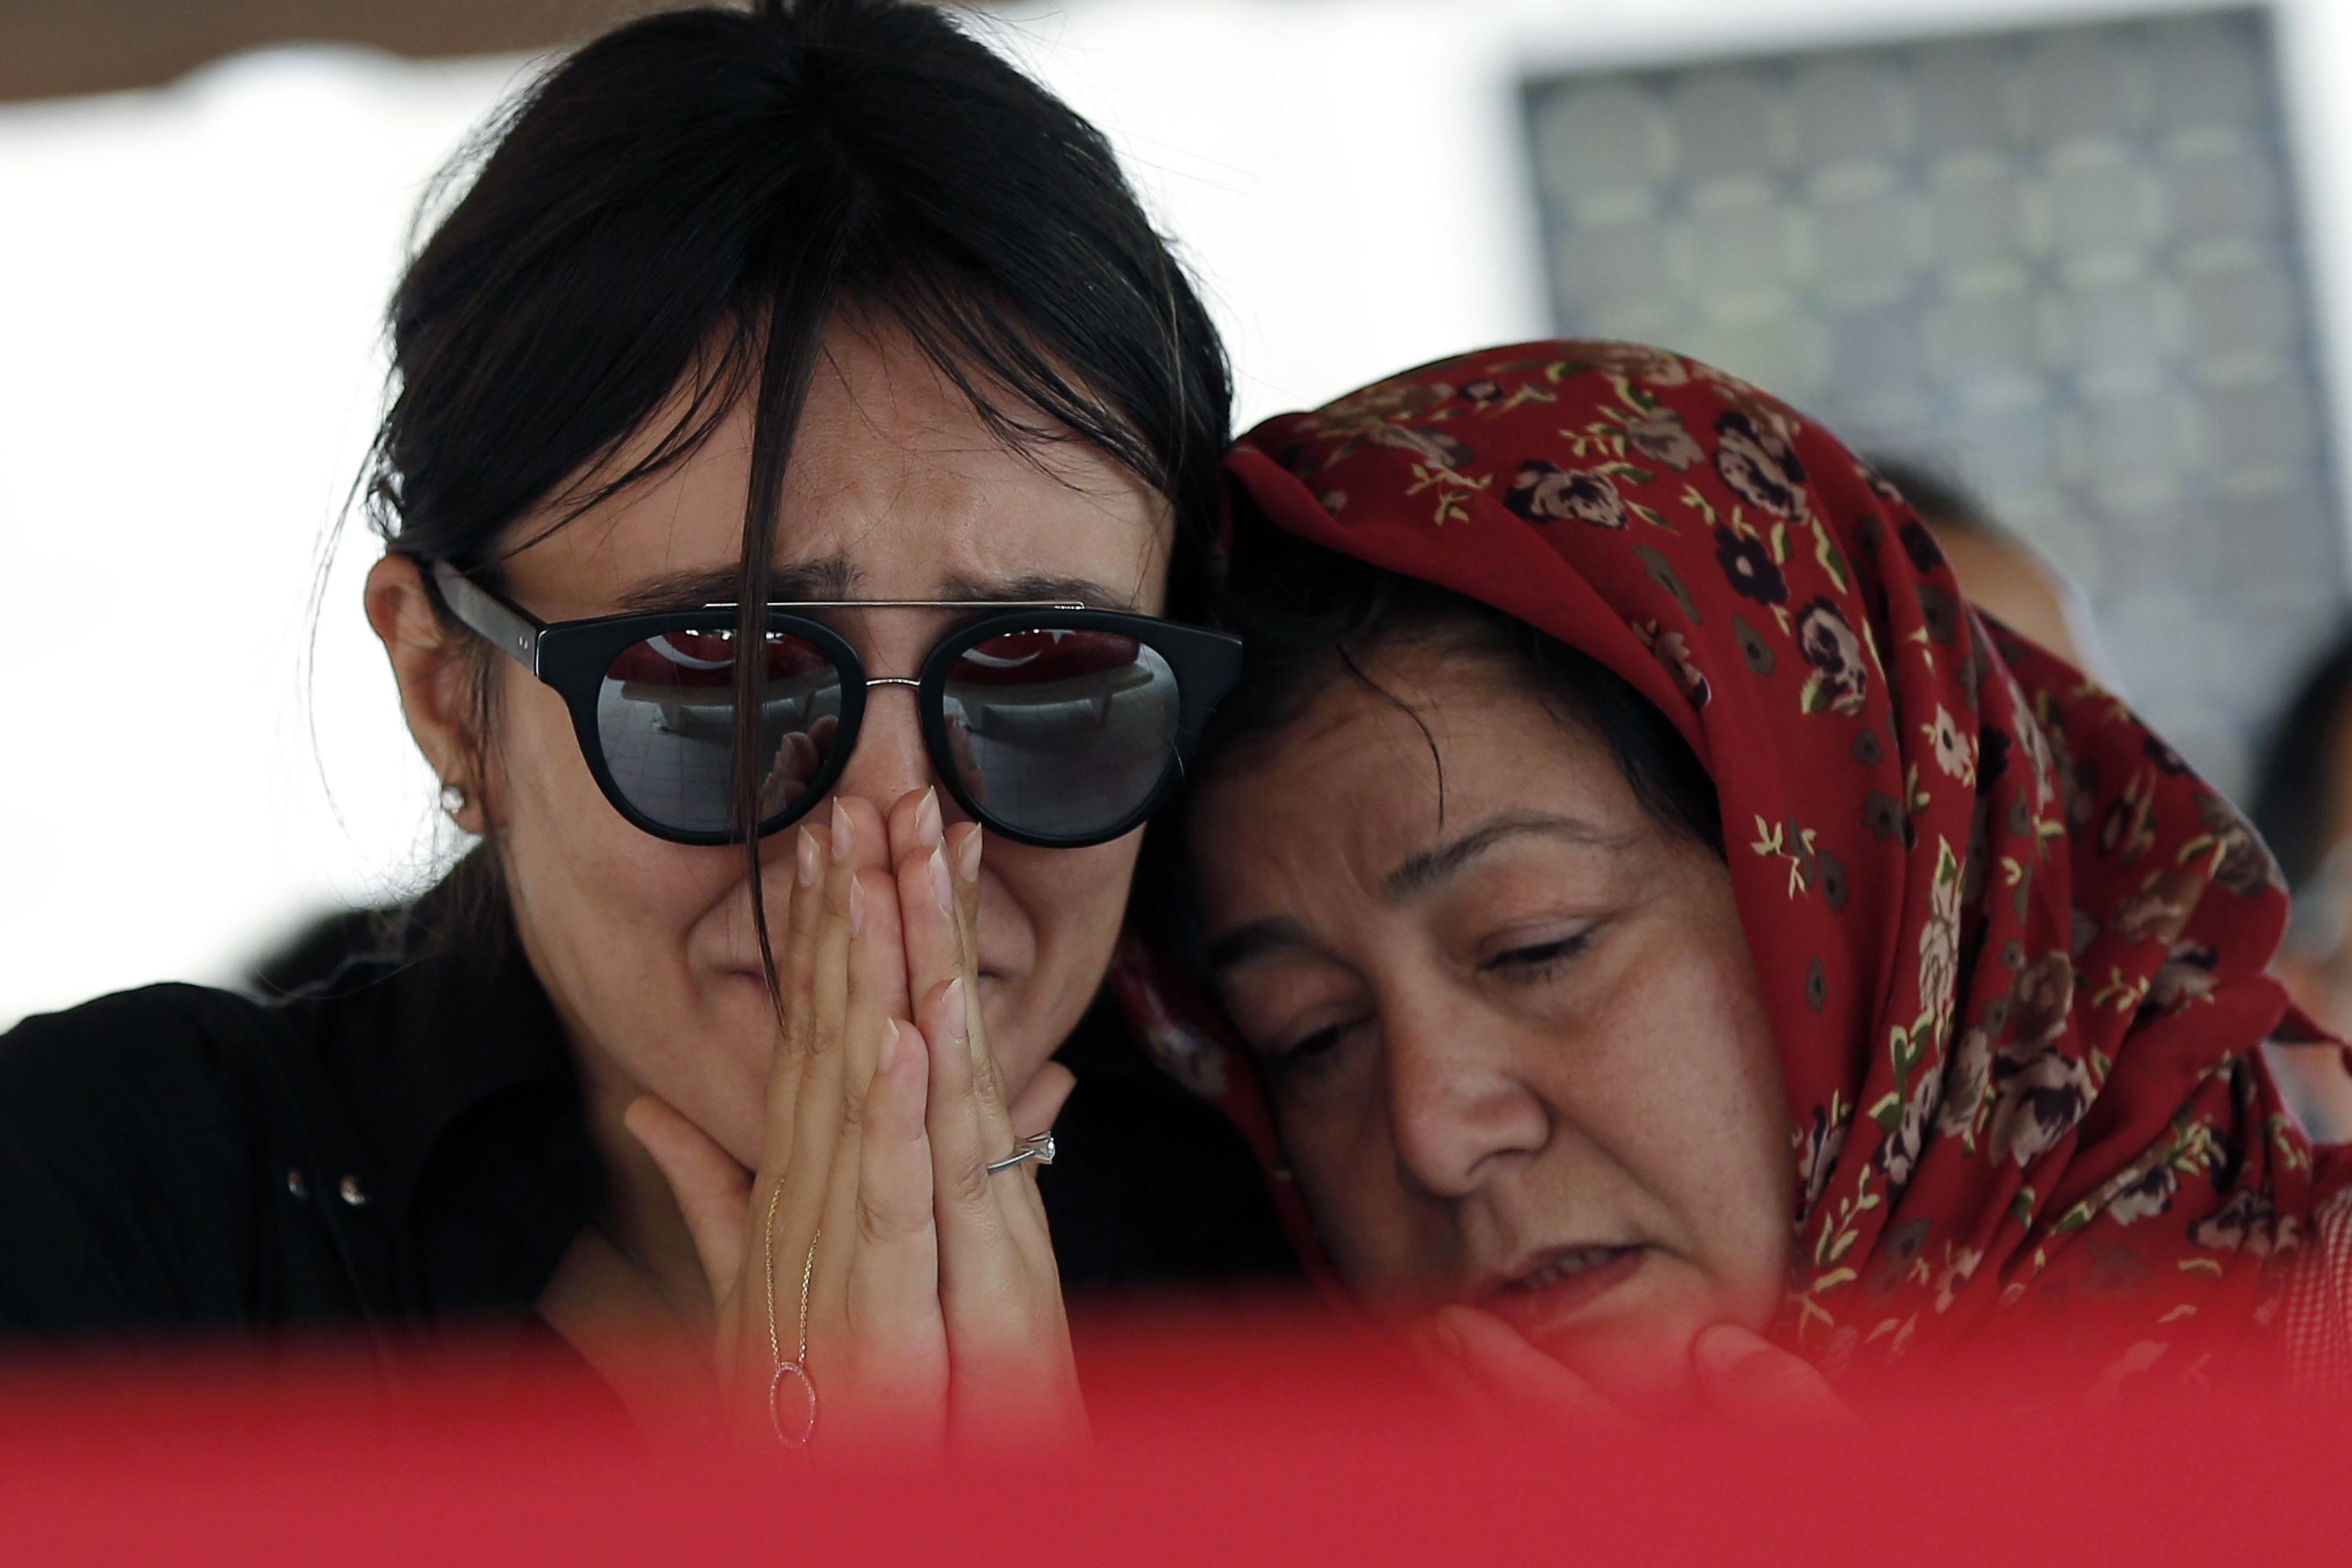 Mourners at the funeral for Gulsen Bahadir